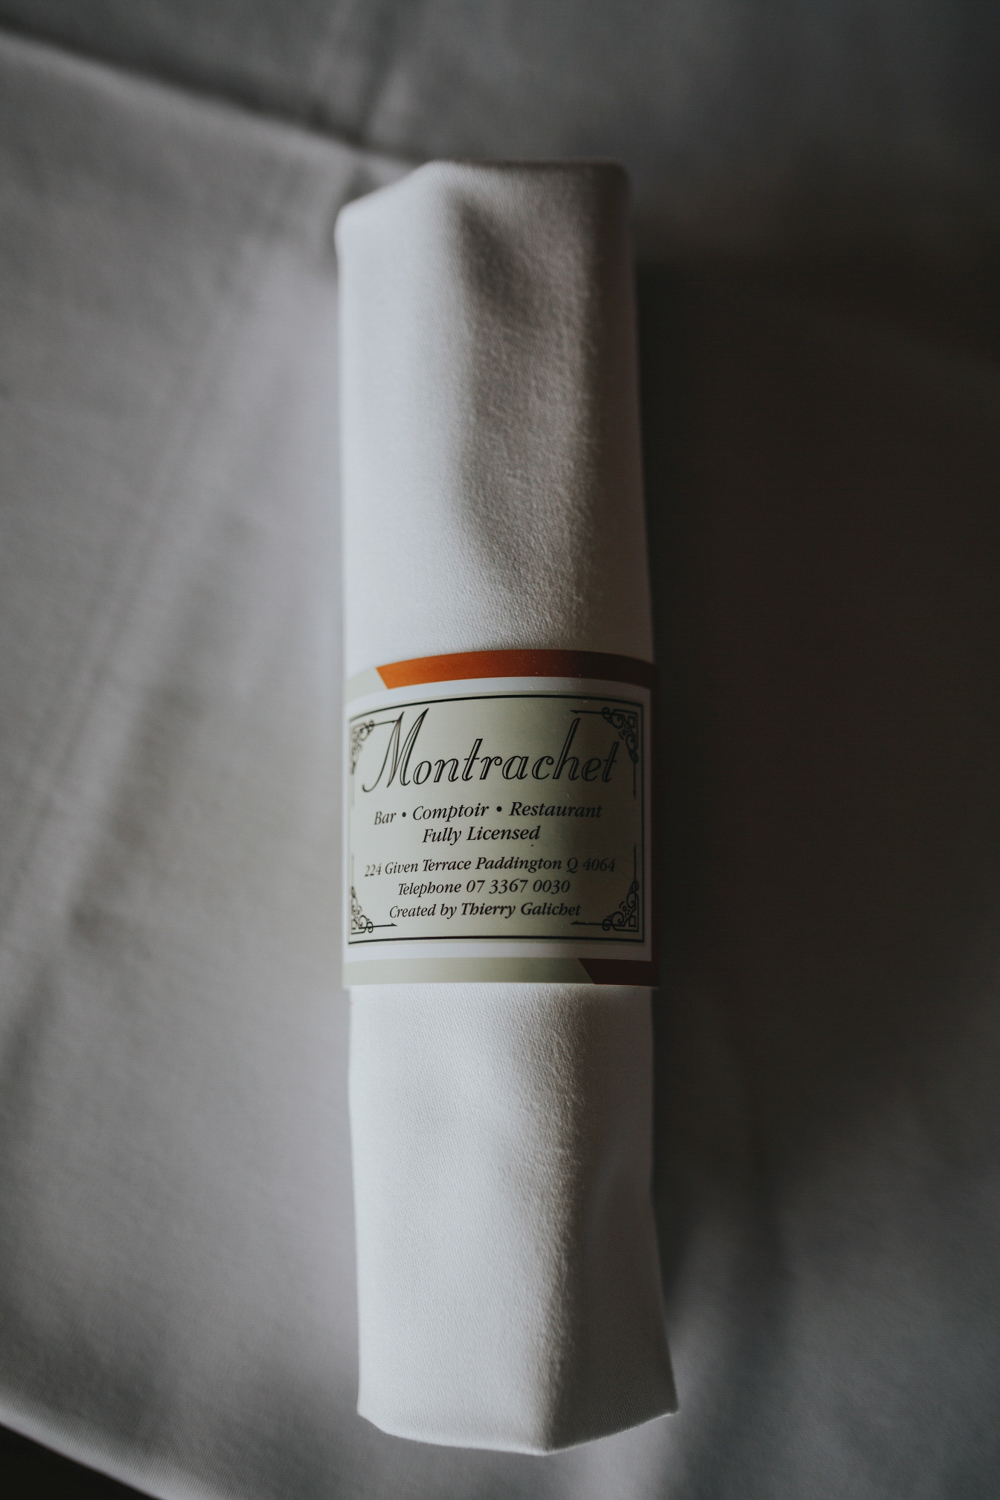 Rustic image of a fine white linen napkin wrapped in branded restaurant napkin holder.